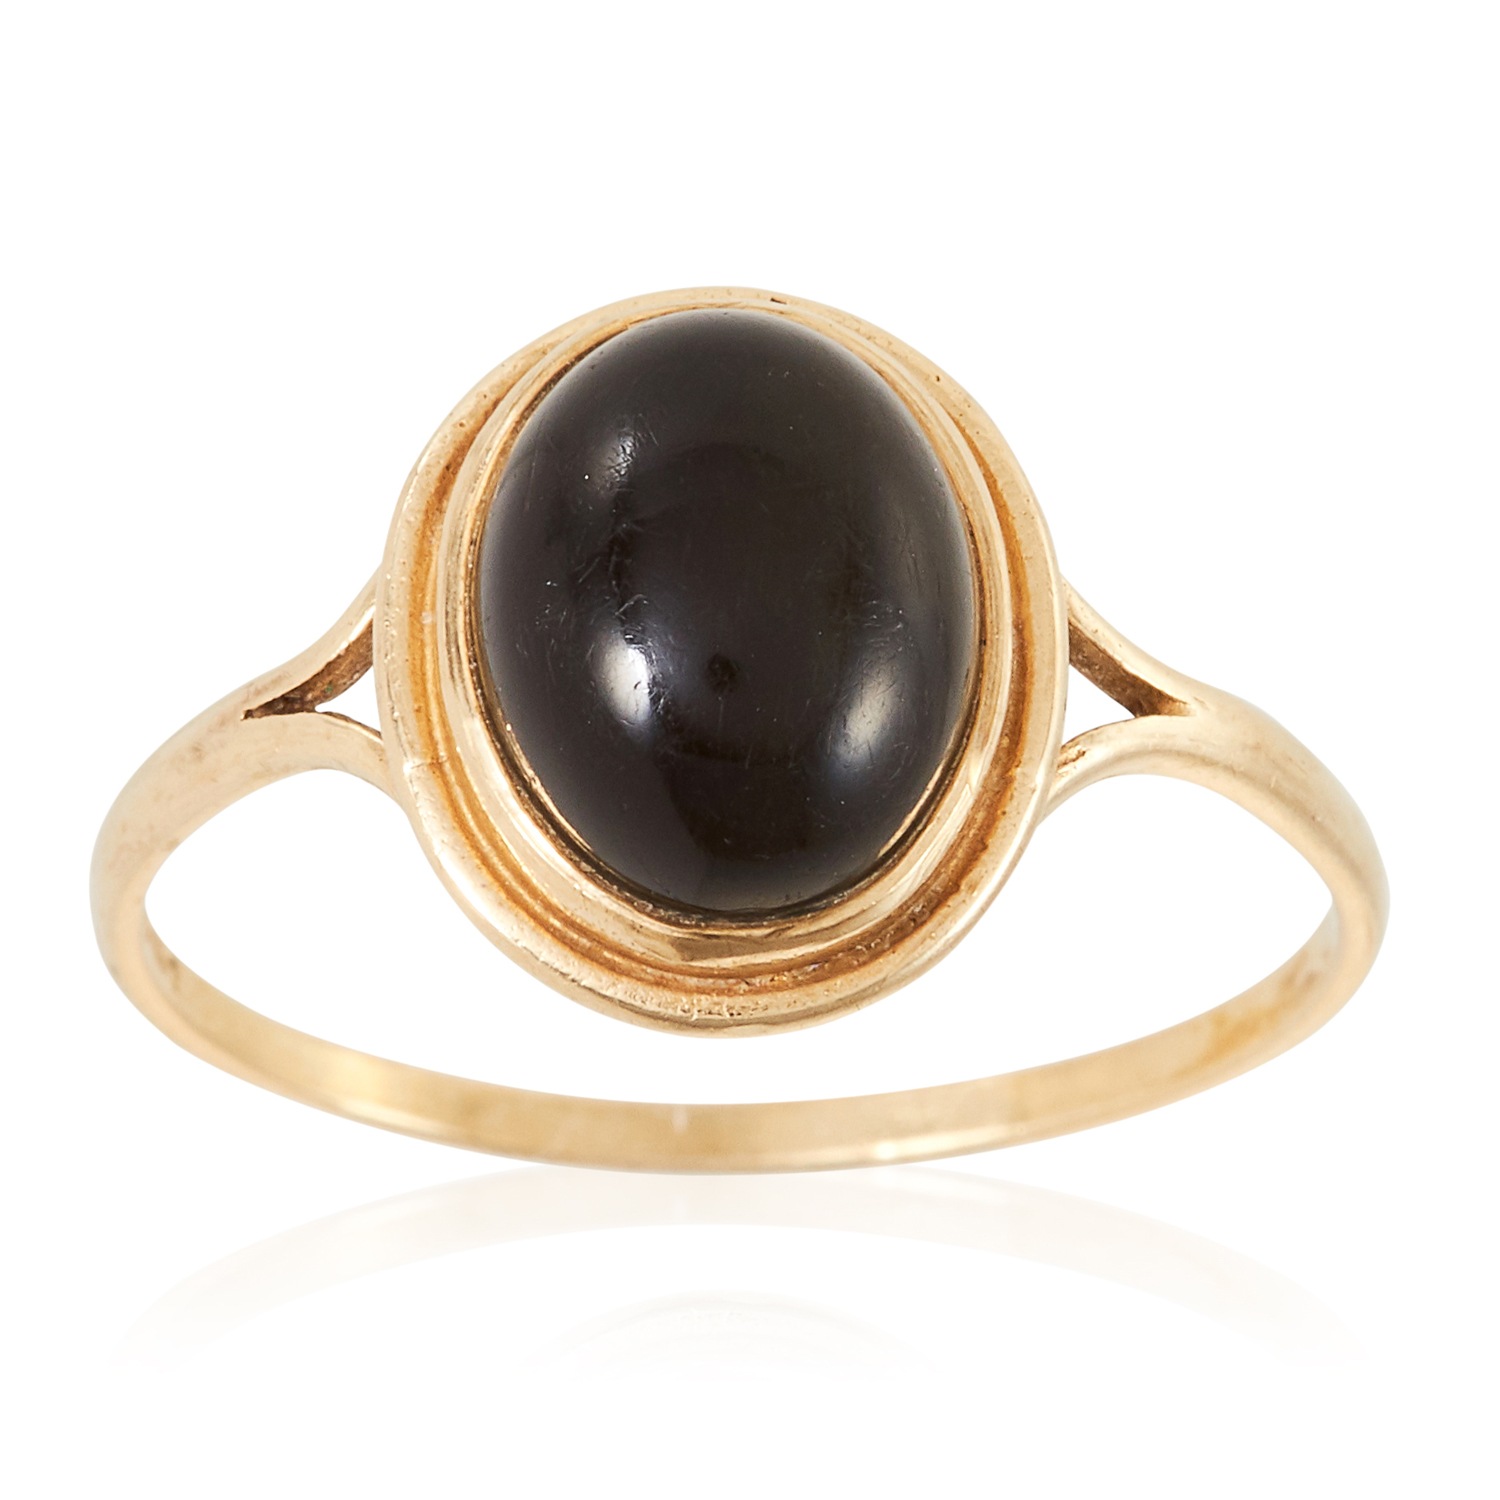 A GEMSET RING in yellow gold, set with a cabochon green stone, British hallmarks, size S / 9, 1.6g.